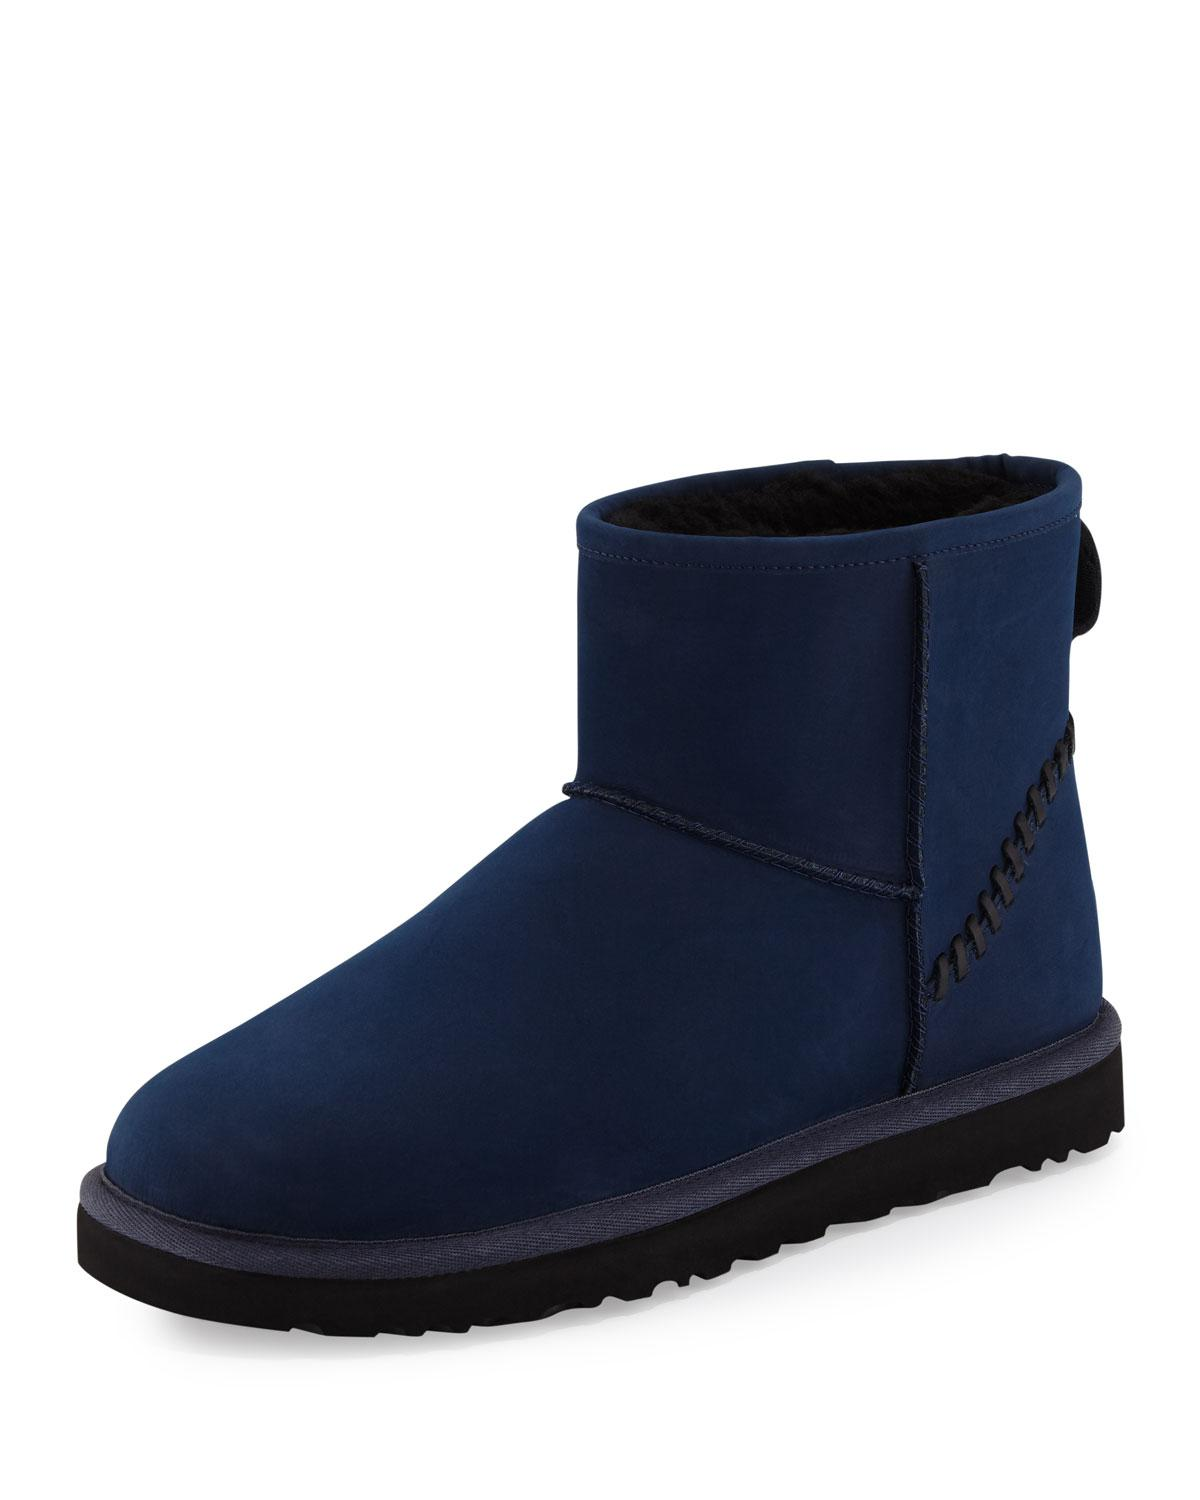 blue uggs mens